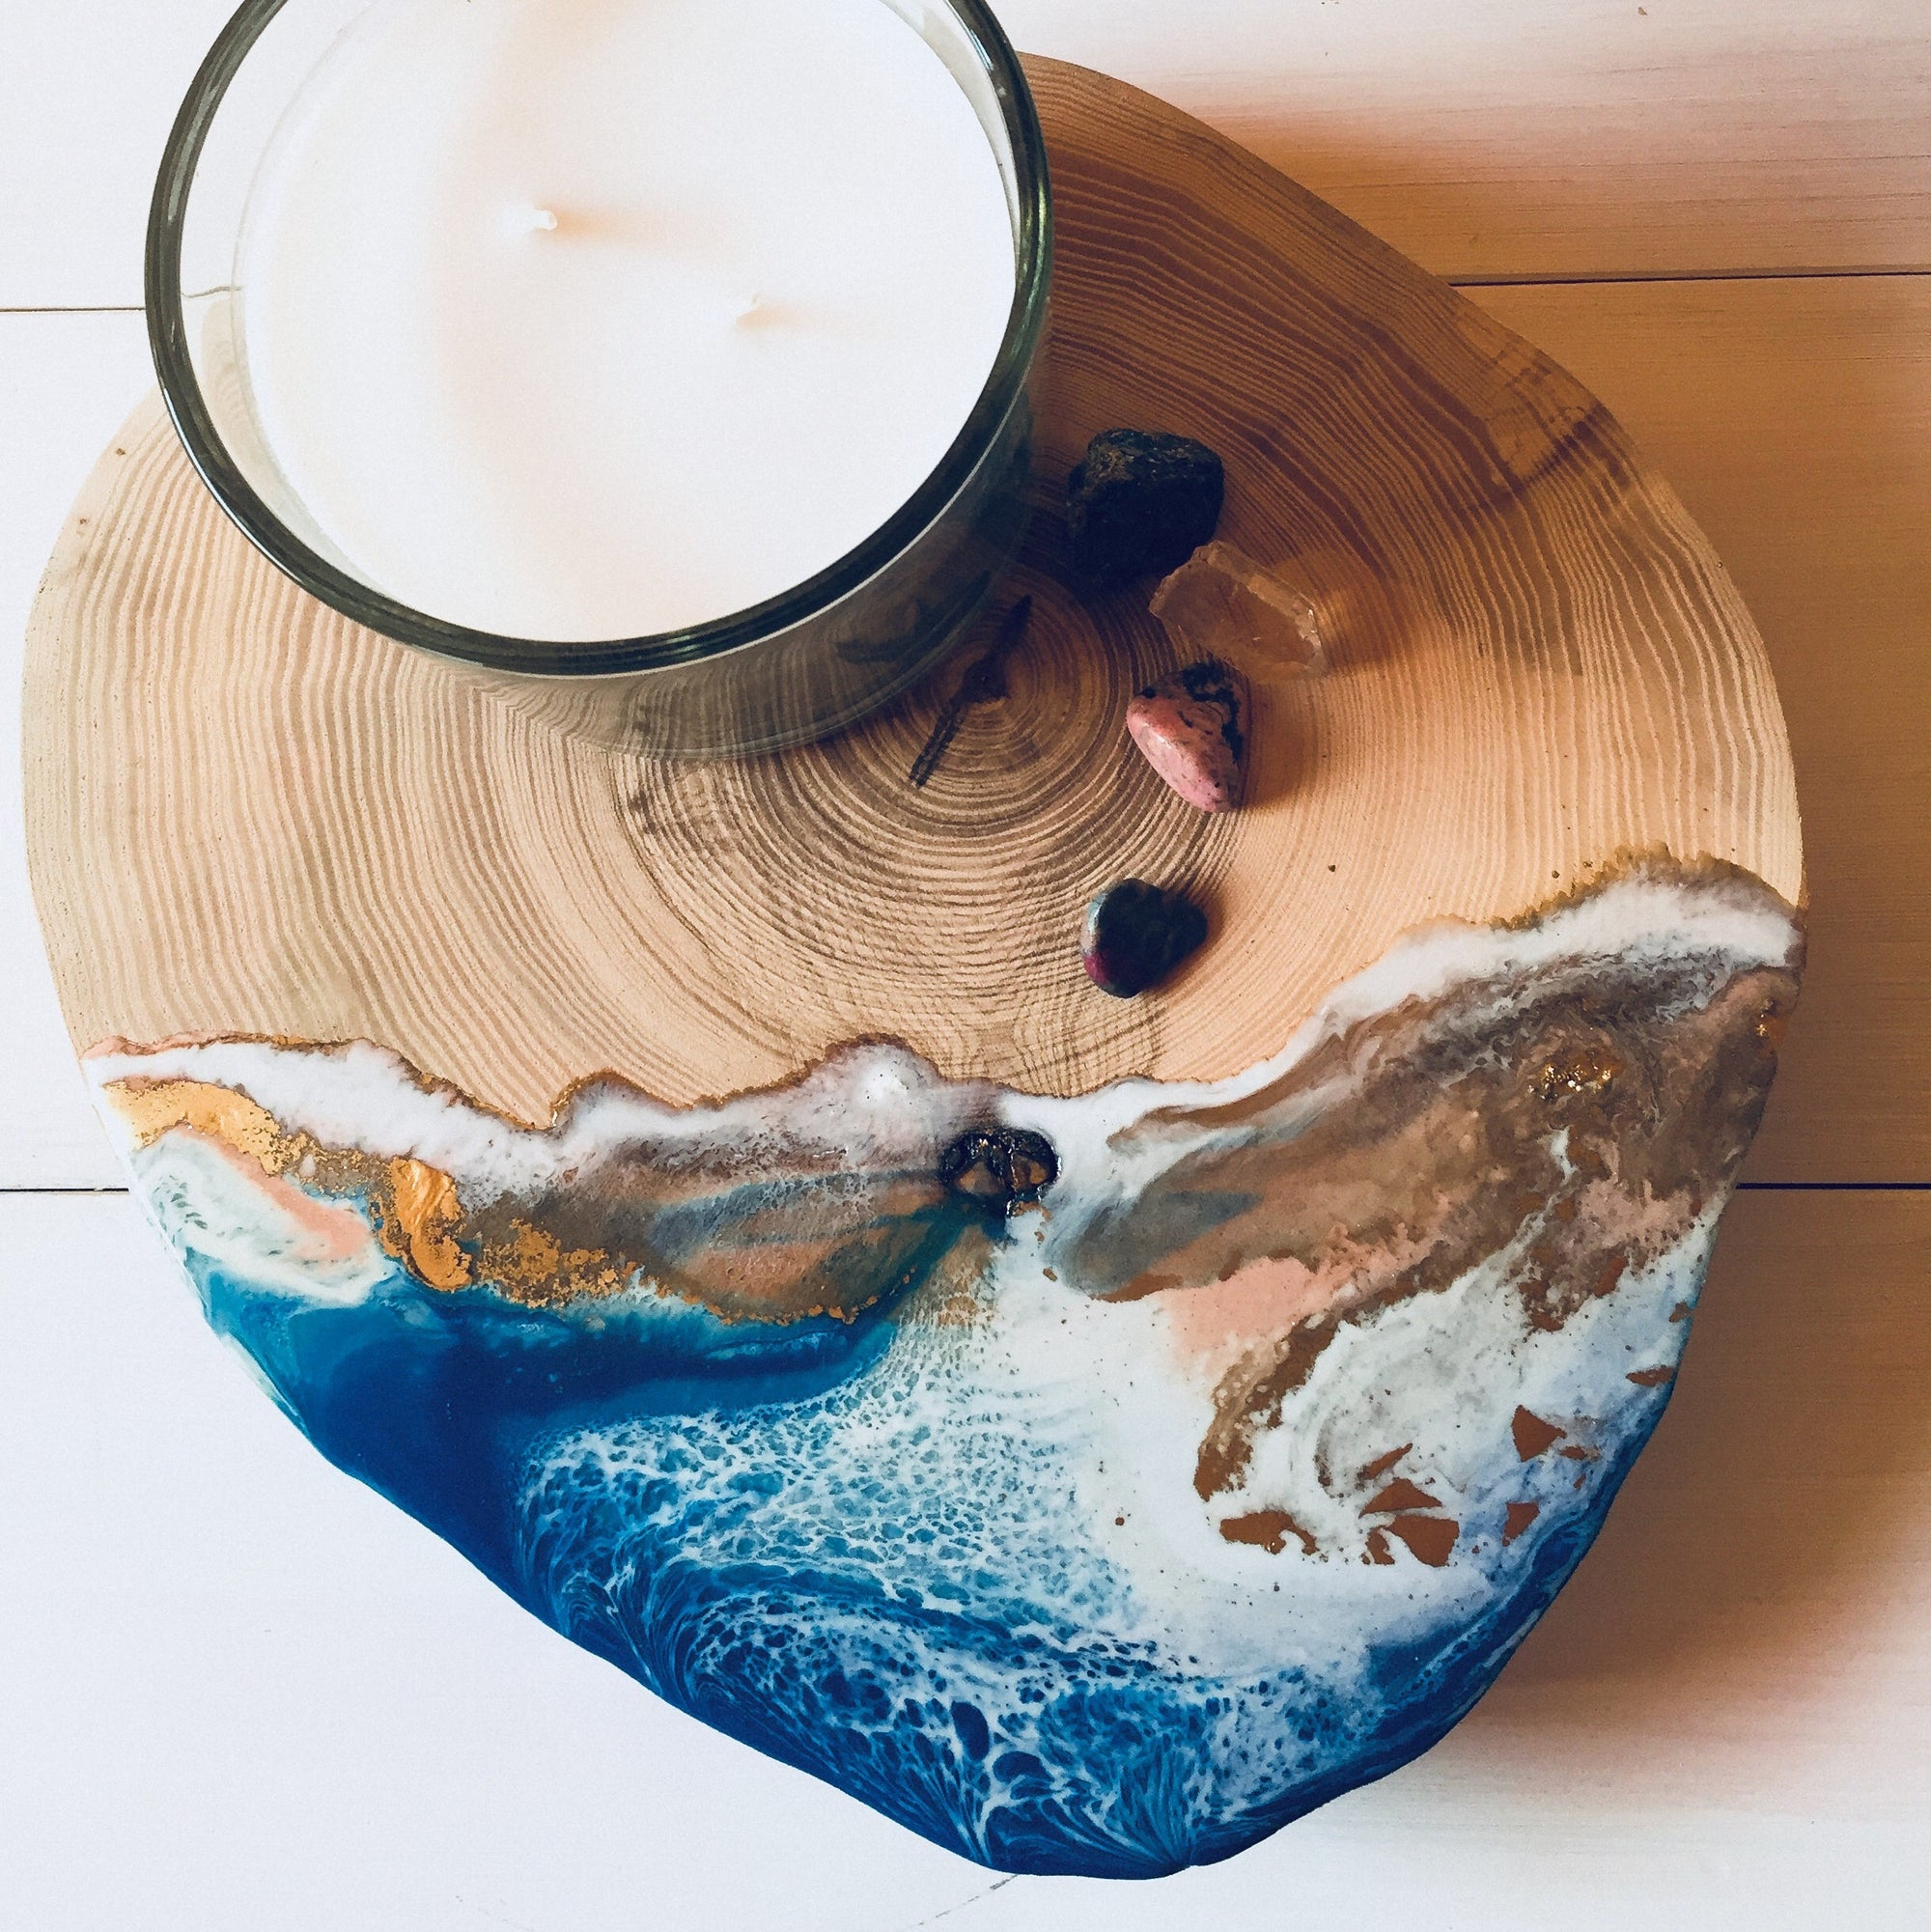 Round Wood and Resin Platter by Milasoo Designer for Rubble, Marketplace for interior design creators